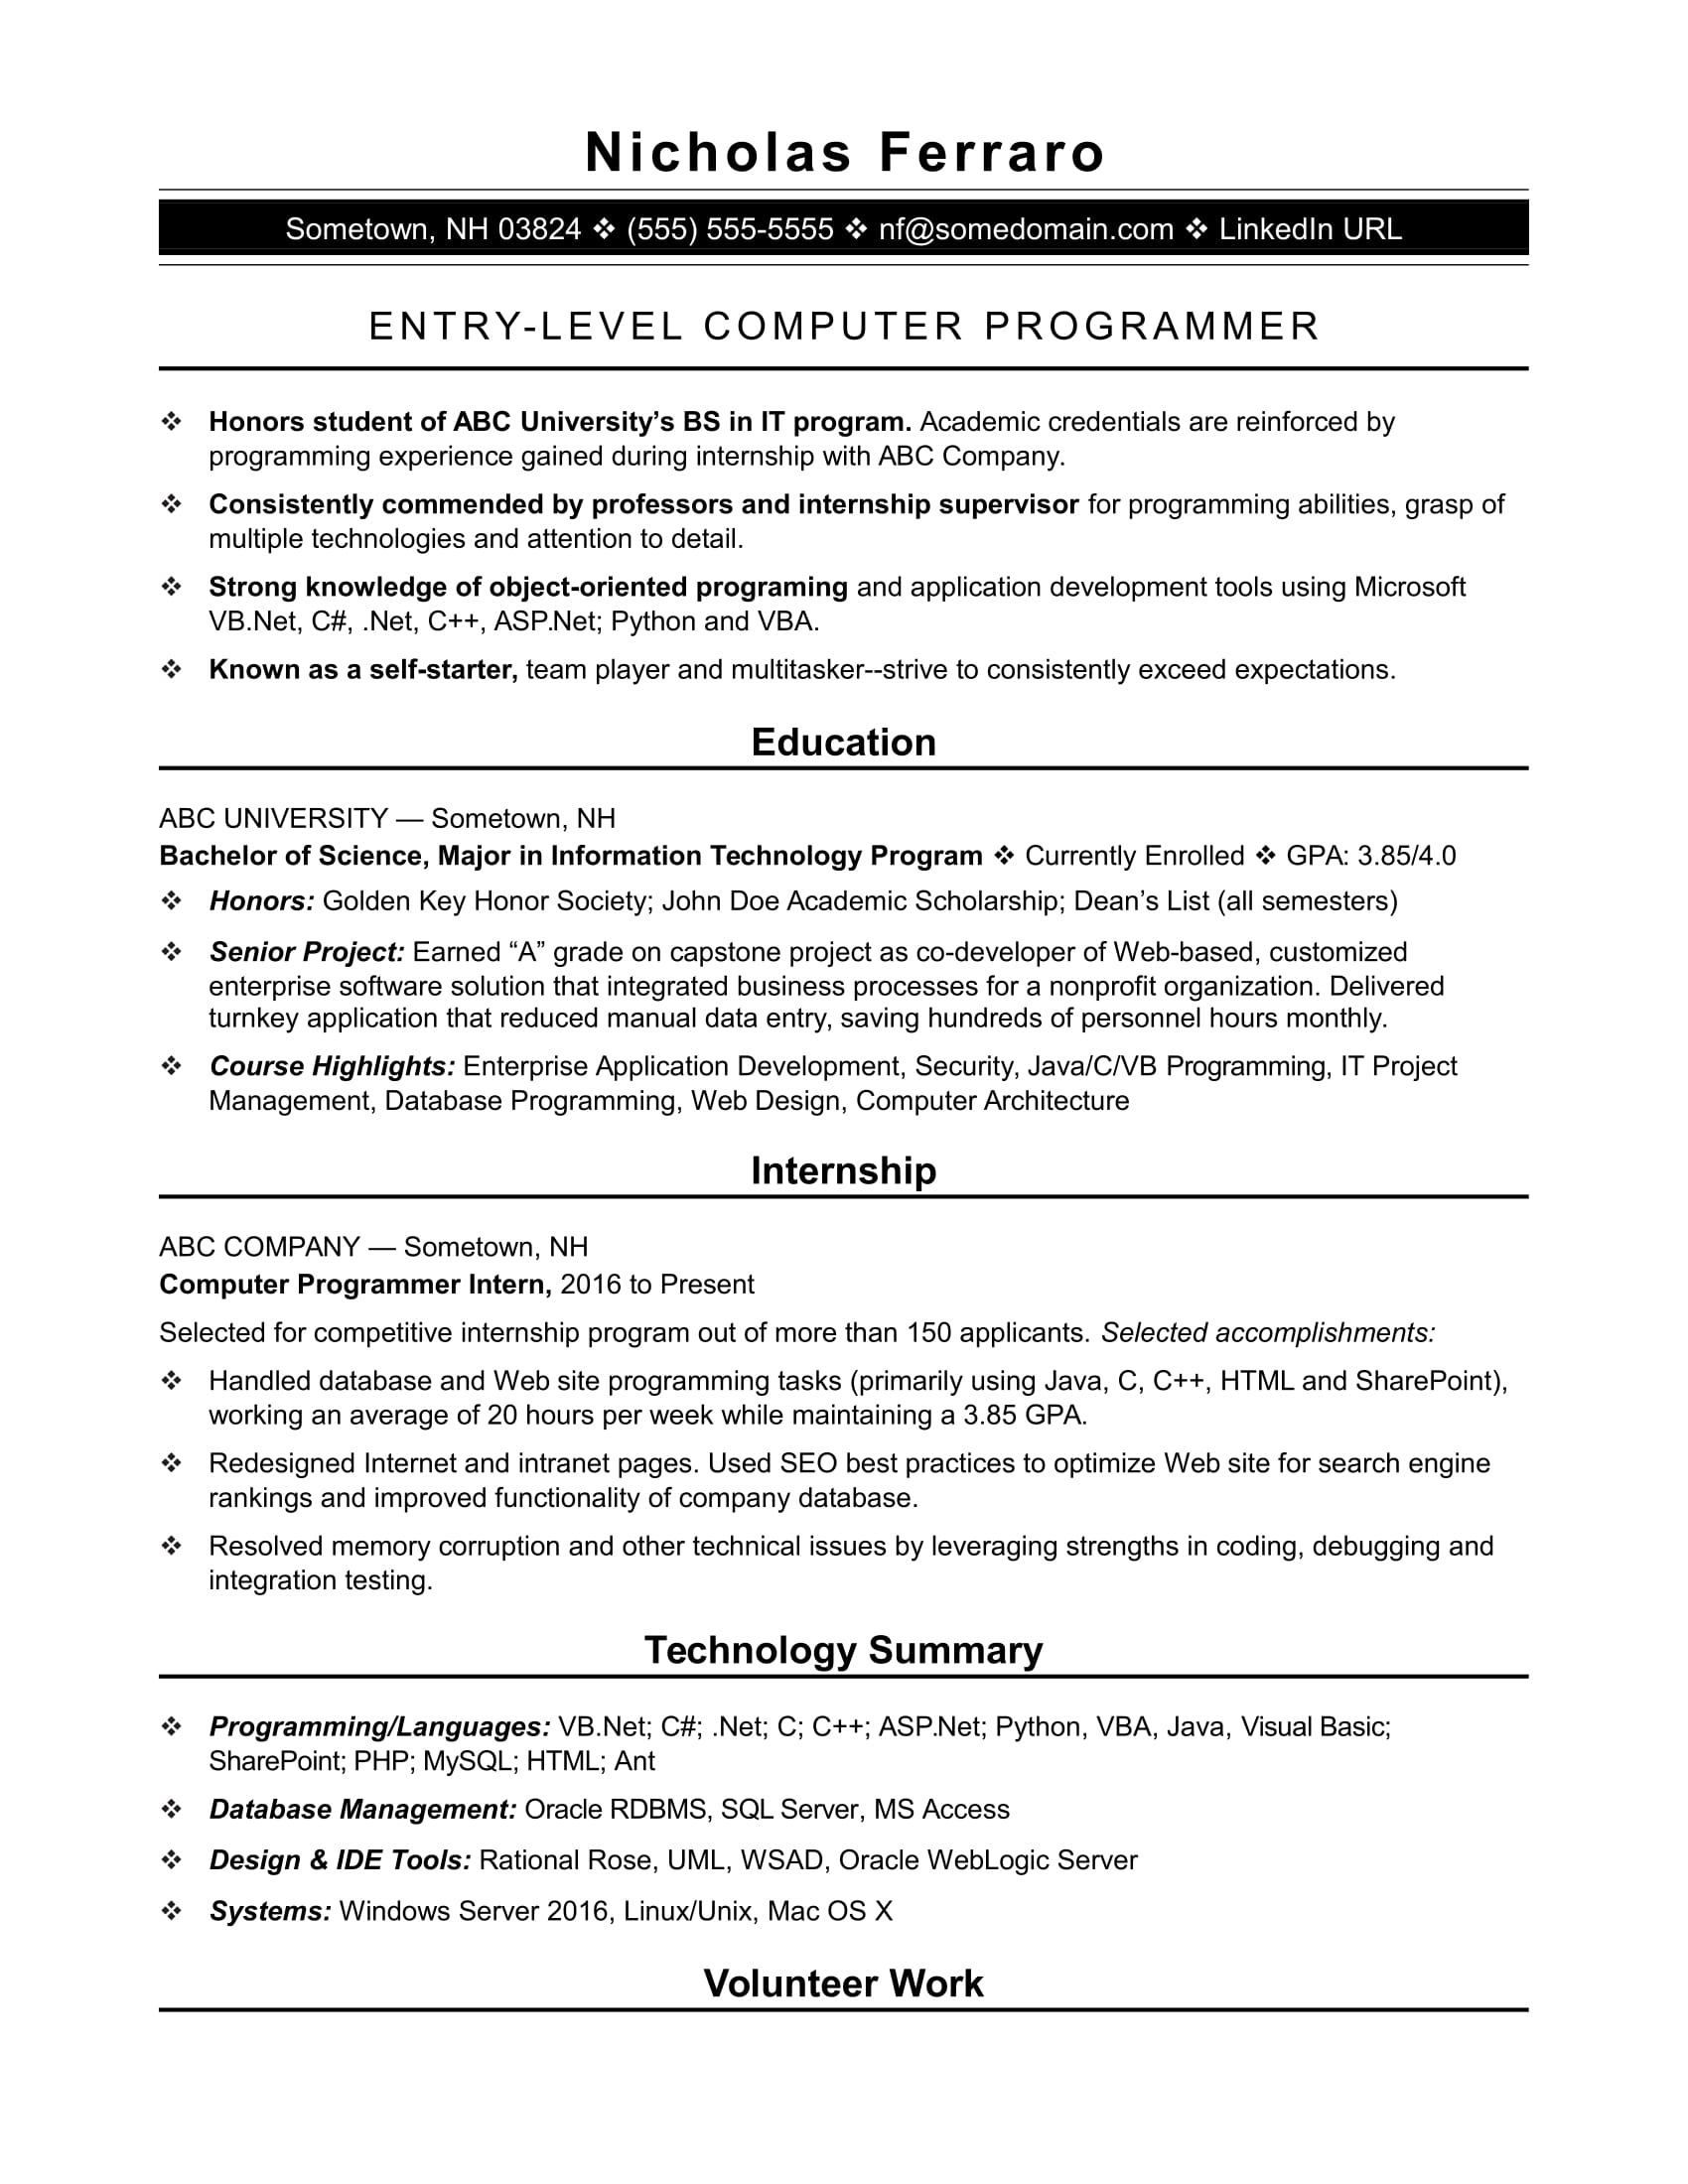 Sample Resume For An Entry-Level Computer Programmer | Monster.com